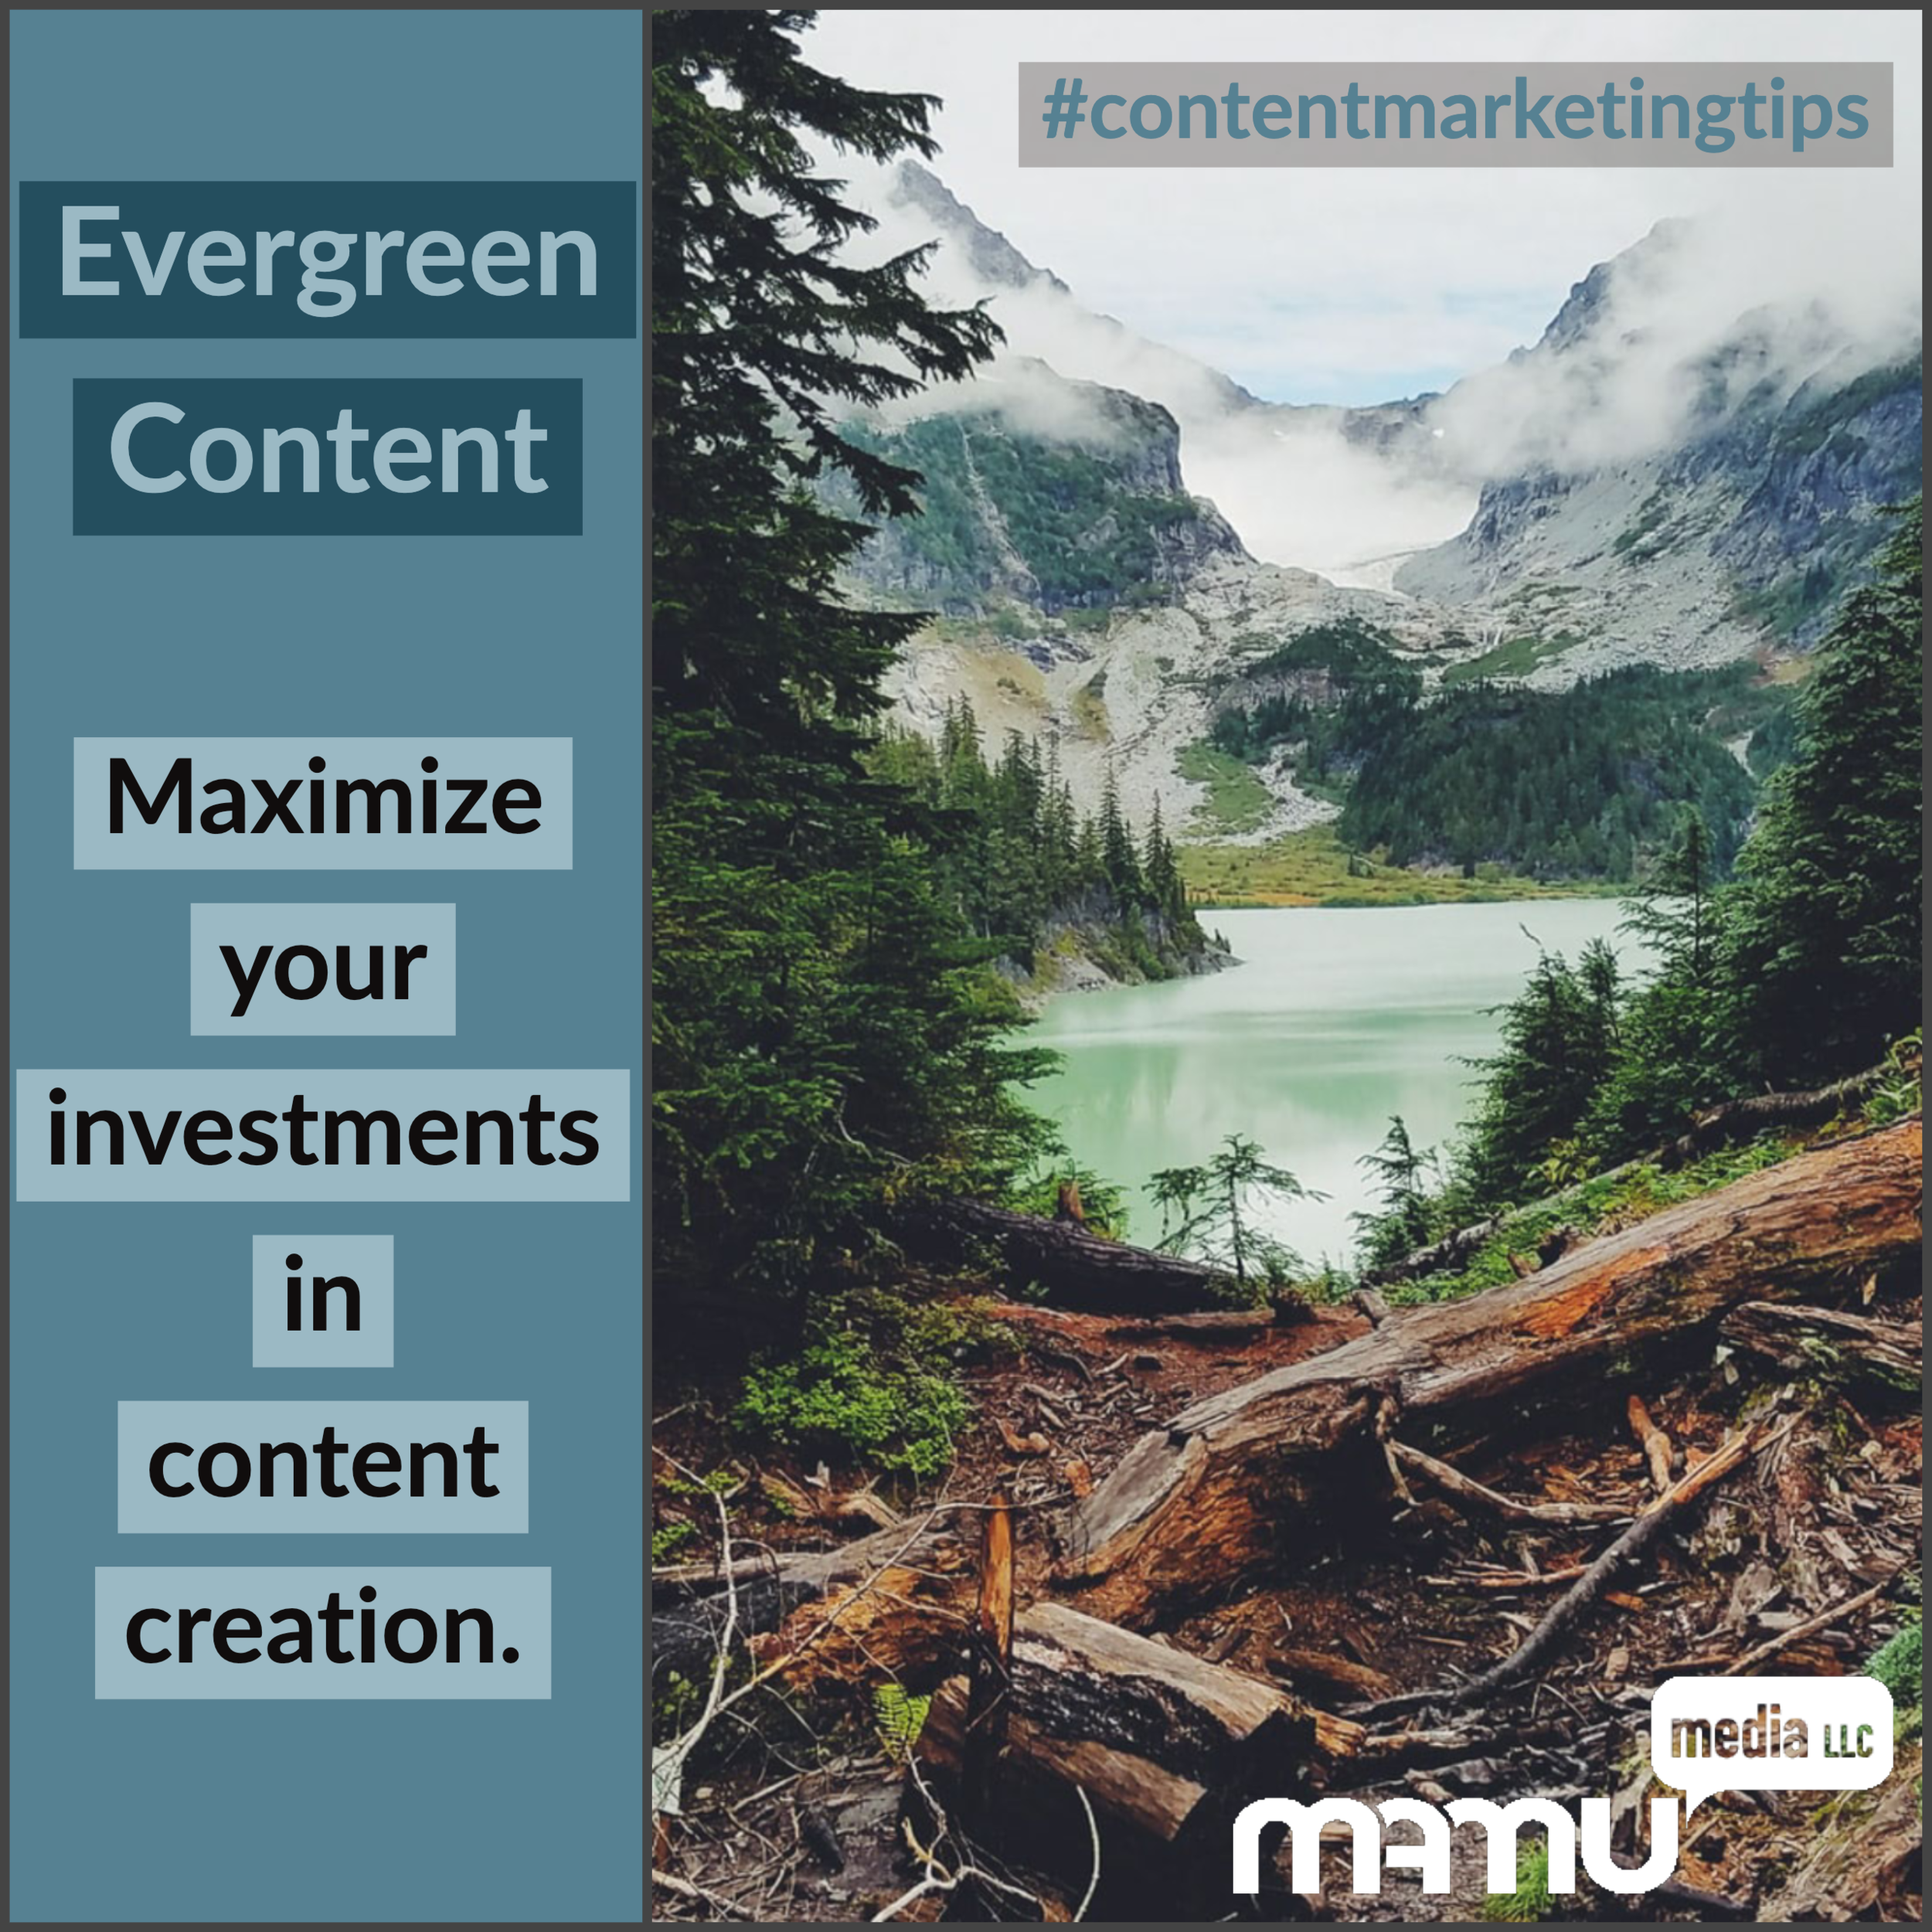 "By using evergreen content—that is, content that maintains its relevance and doesn't ""expire""—an organization can maximize the benefit of its investments in content creation."